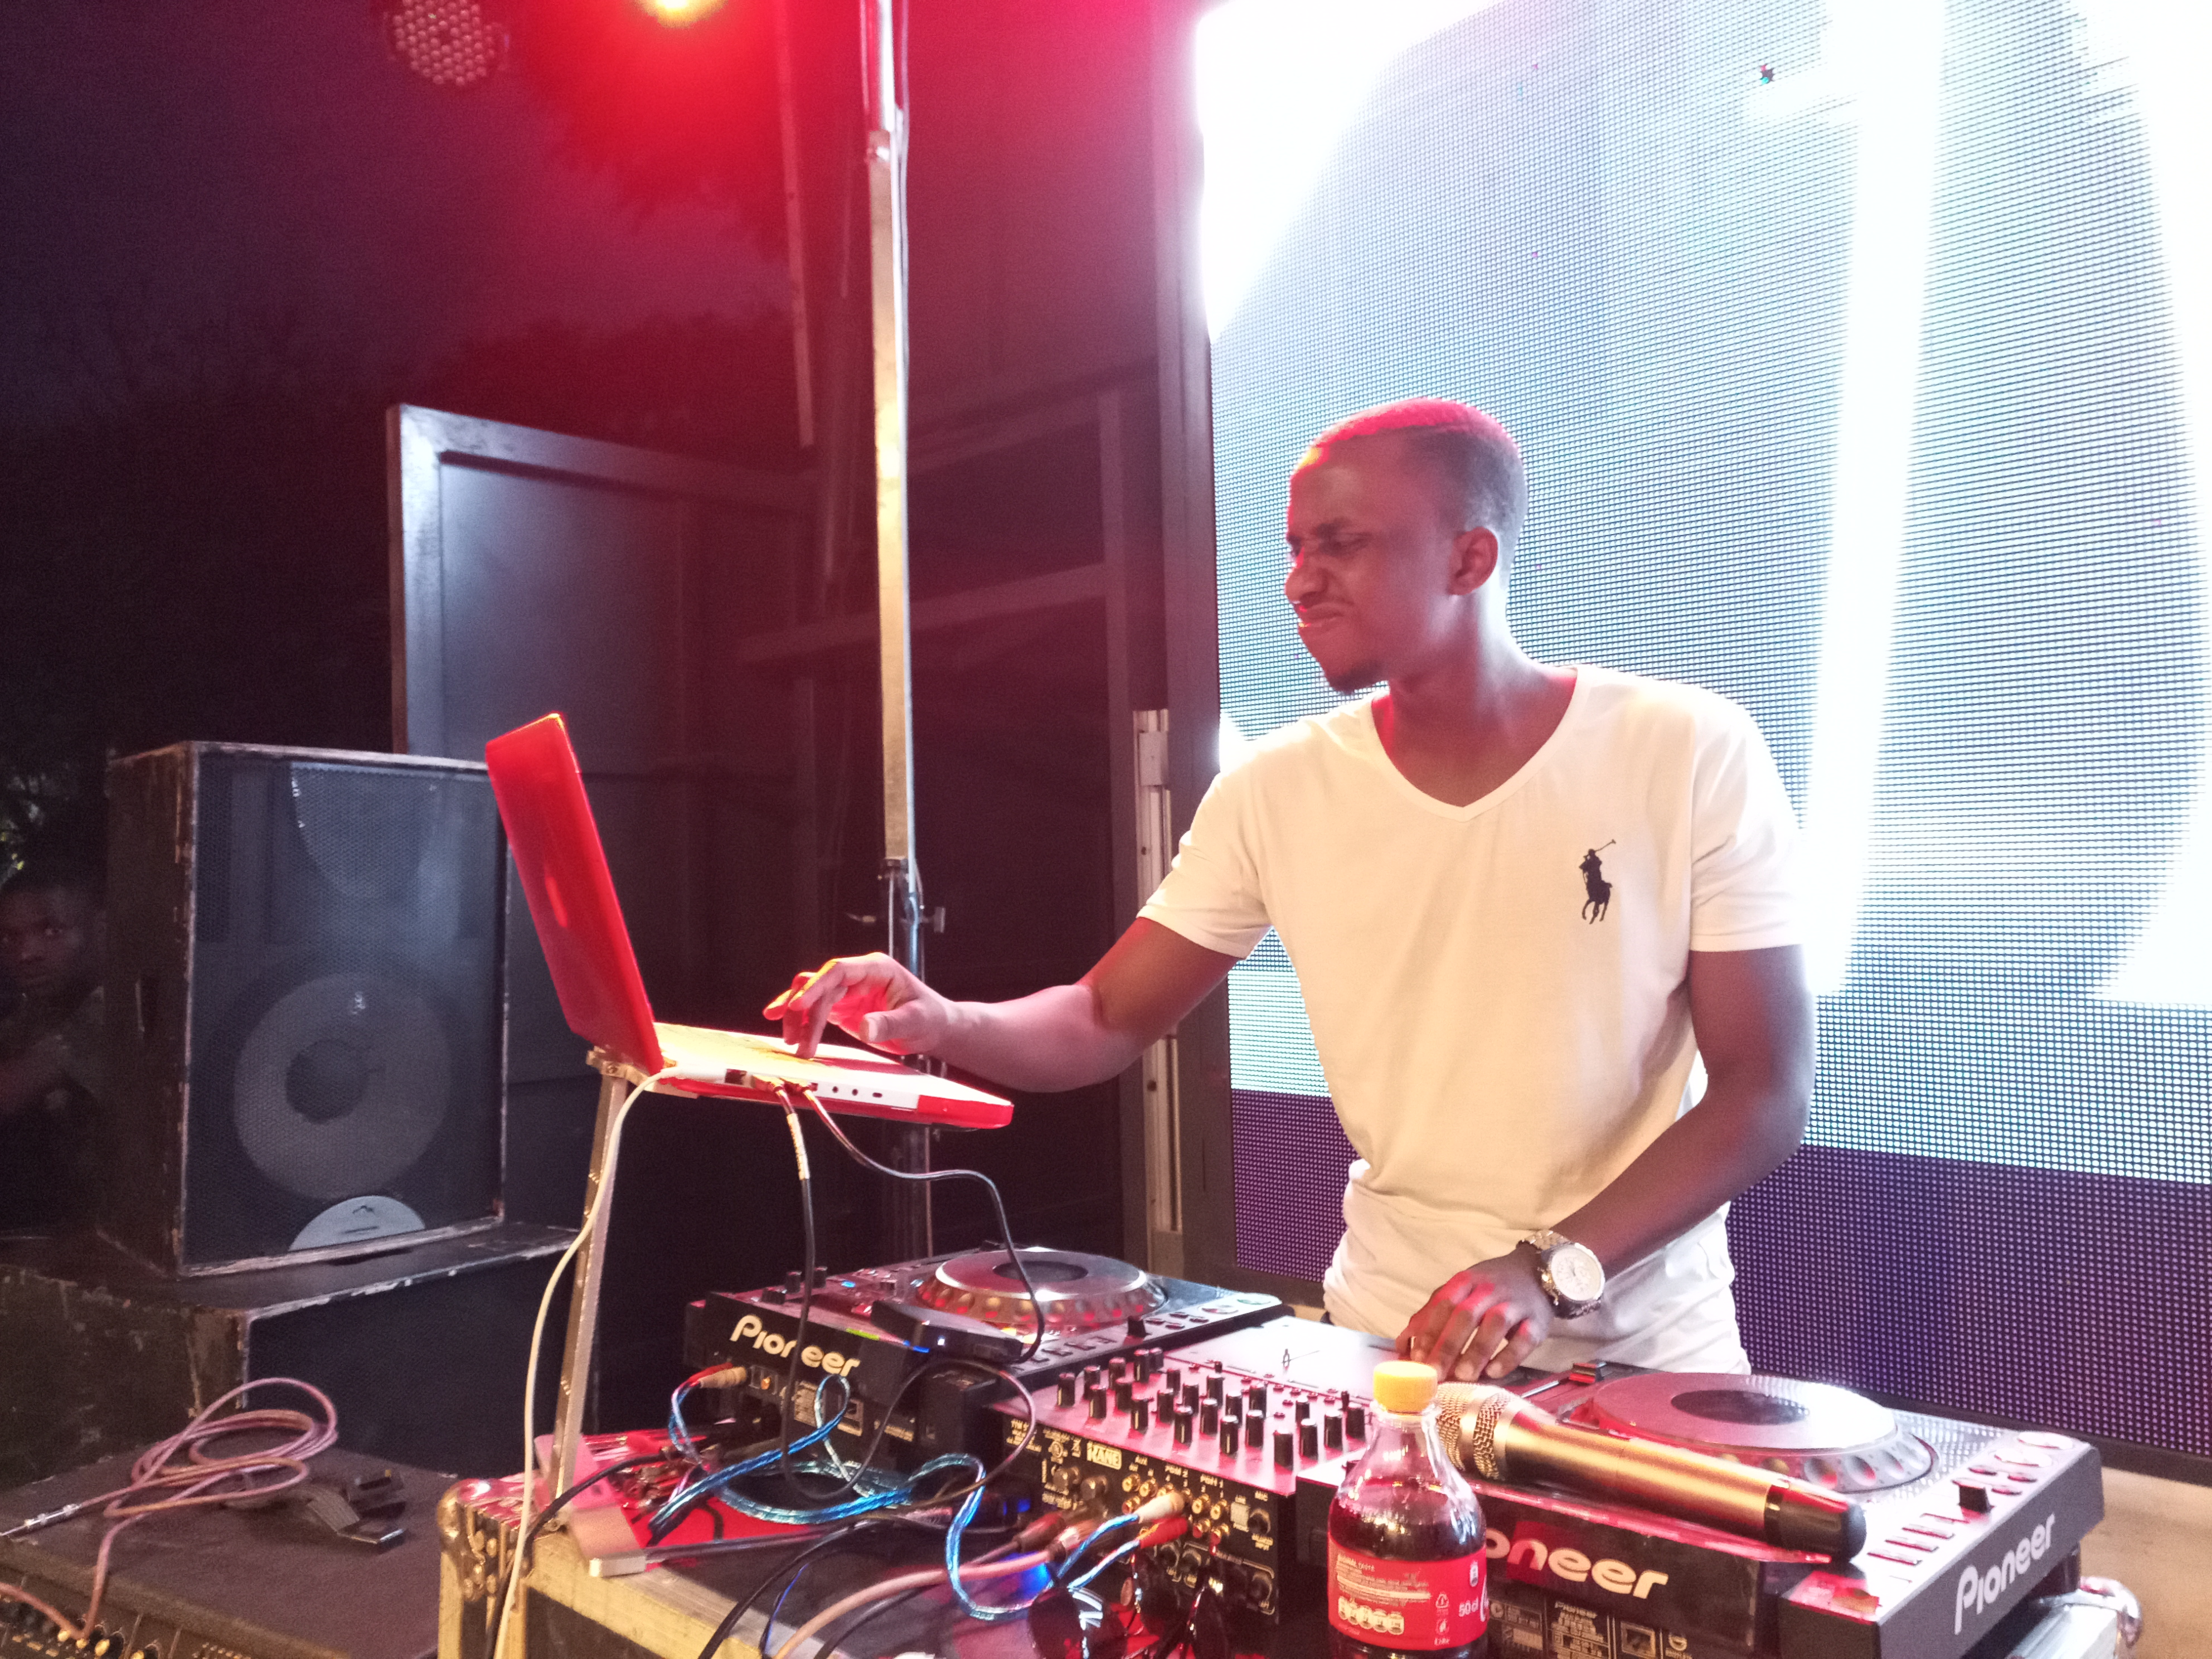 Located in Kimihurura (former Ogopogo), the spot is hoped to be the city's spot for trends and sheer entertainment for the Dream Team Deejays and suprise guest Deejays and Artists.